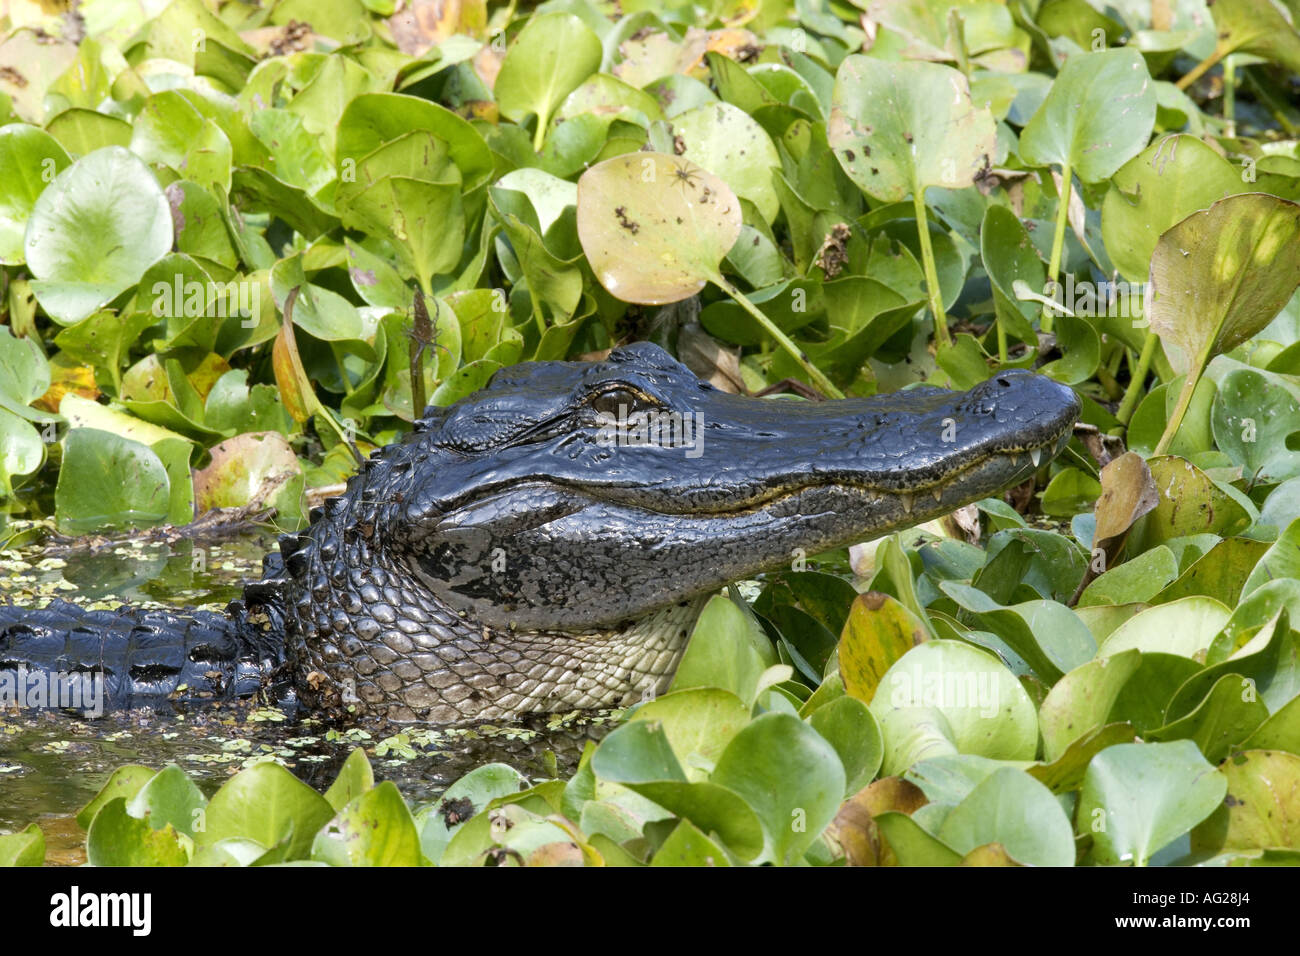 zoology / animals, reptile, Alligatoridae, American Alligator (Alligator mississippiensis), swimming in water, detail: head, Everglades, national park, Florida, USA, distribution: southern states of North America, Additional-Rights-Clearance-Info-Not-Available - Stock Image